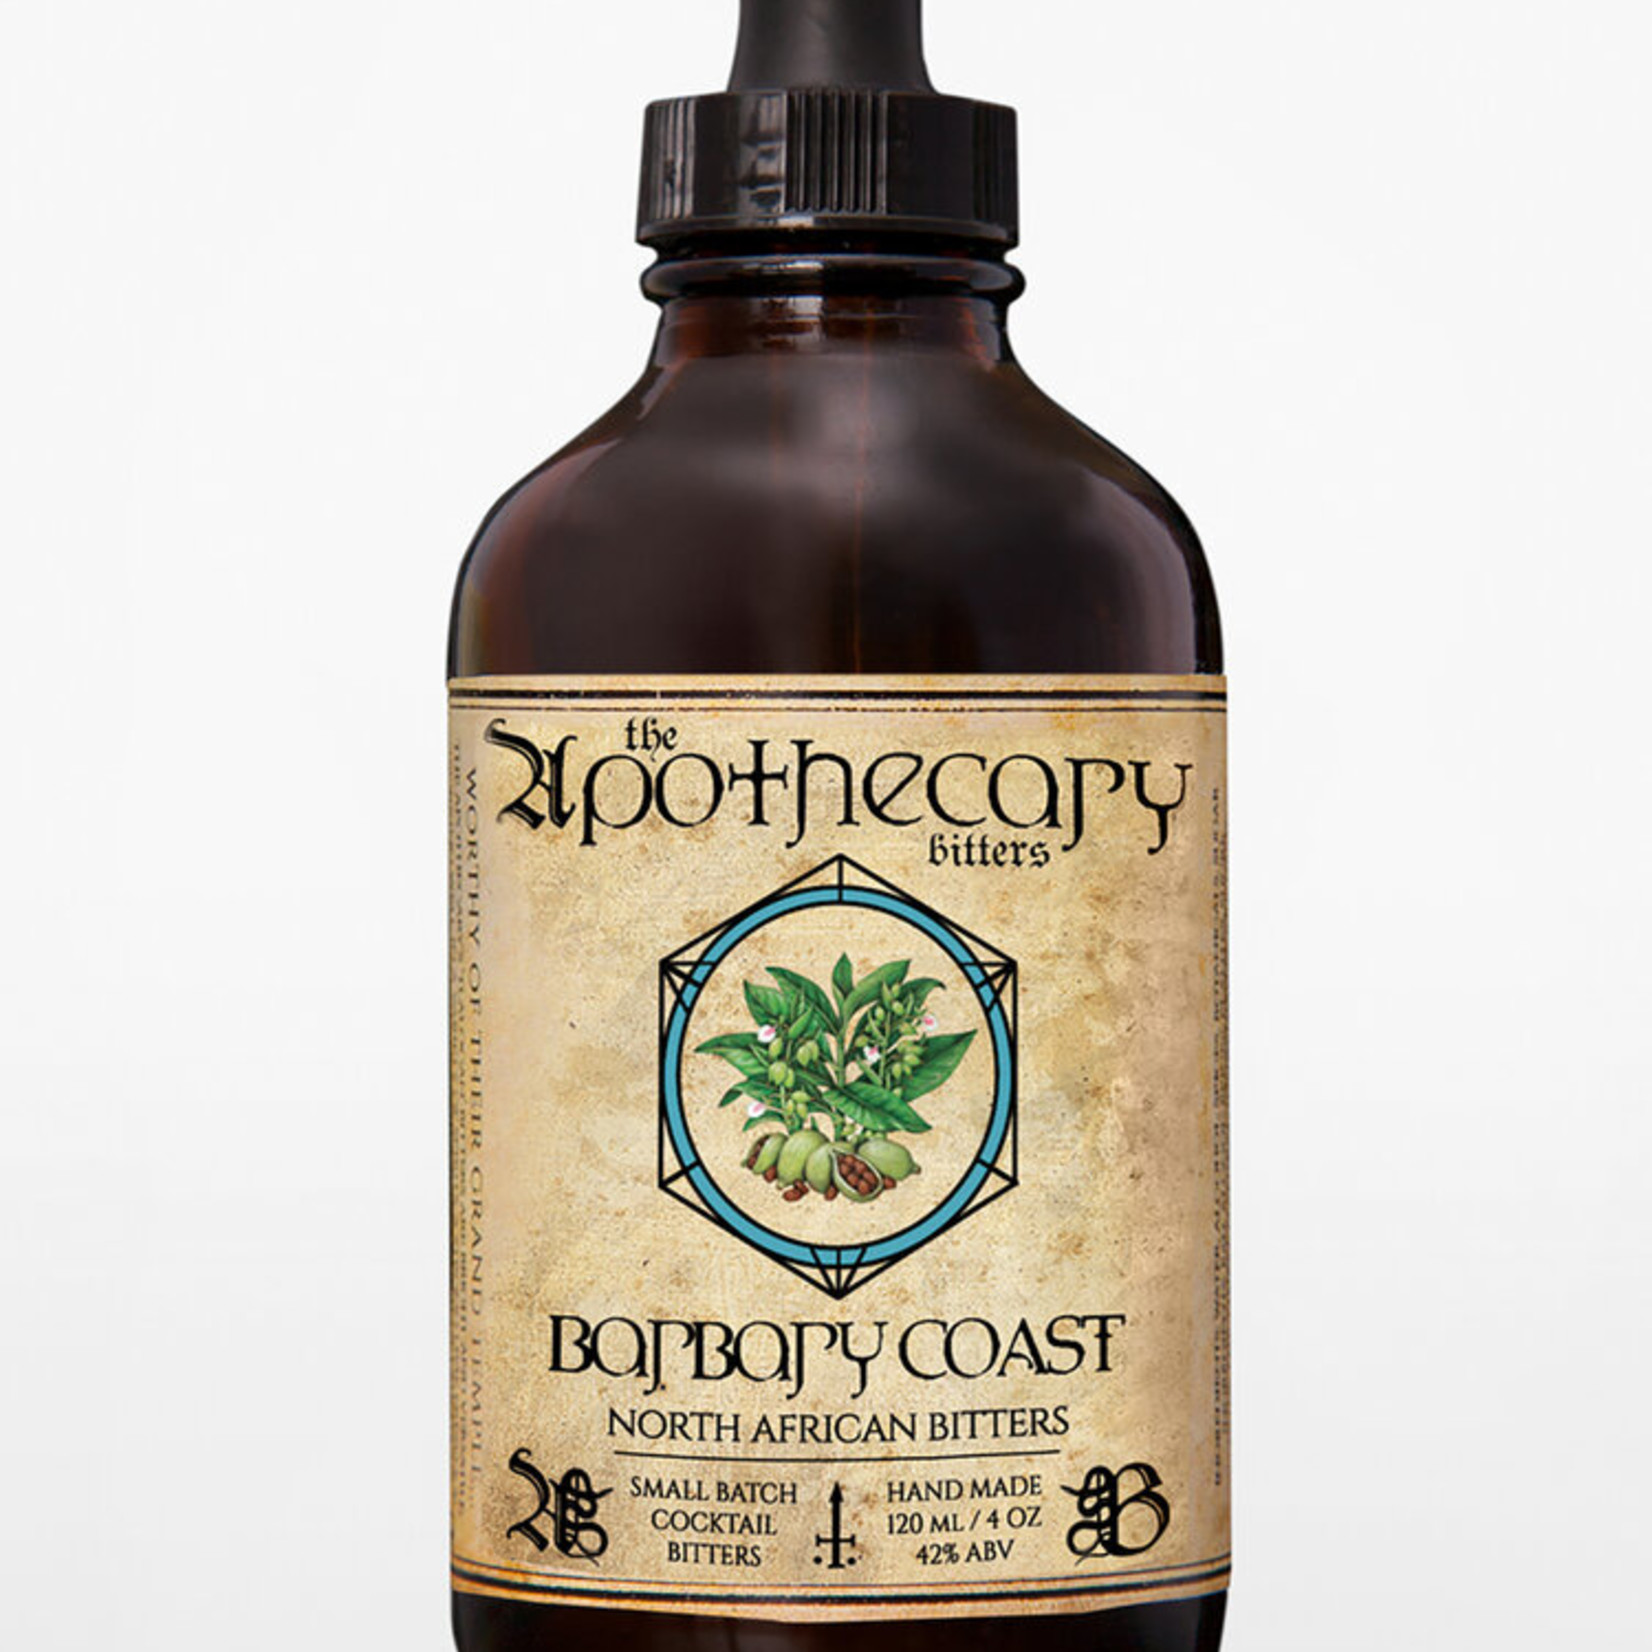 Apothecary Apothecary Bitters Barbary Coast North Africa